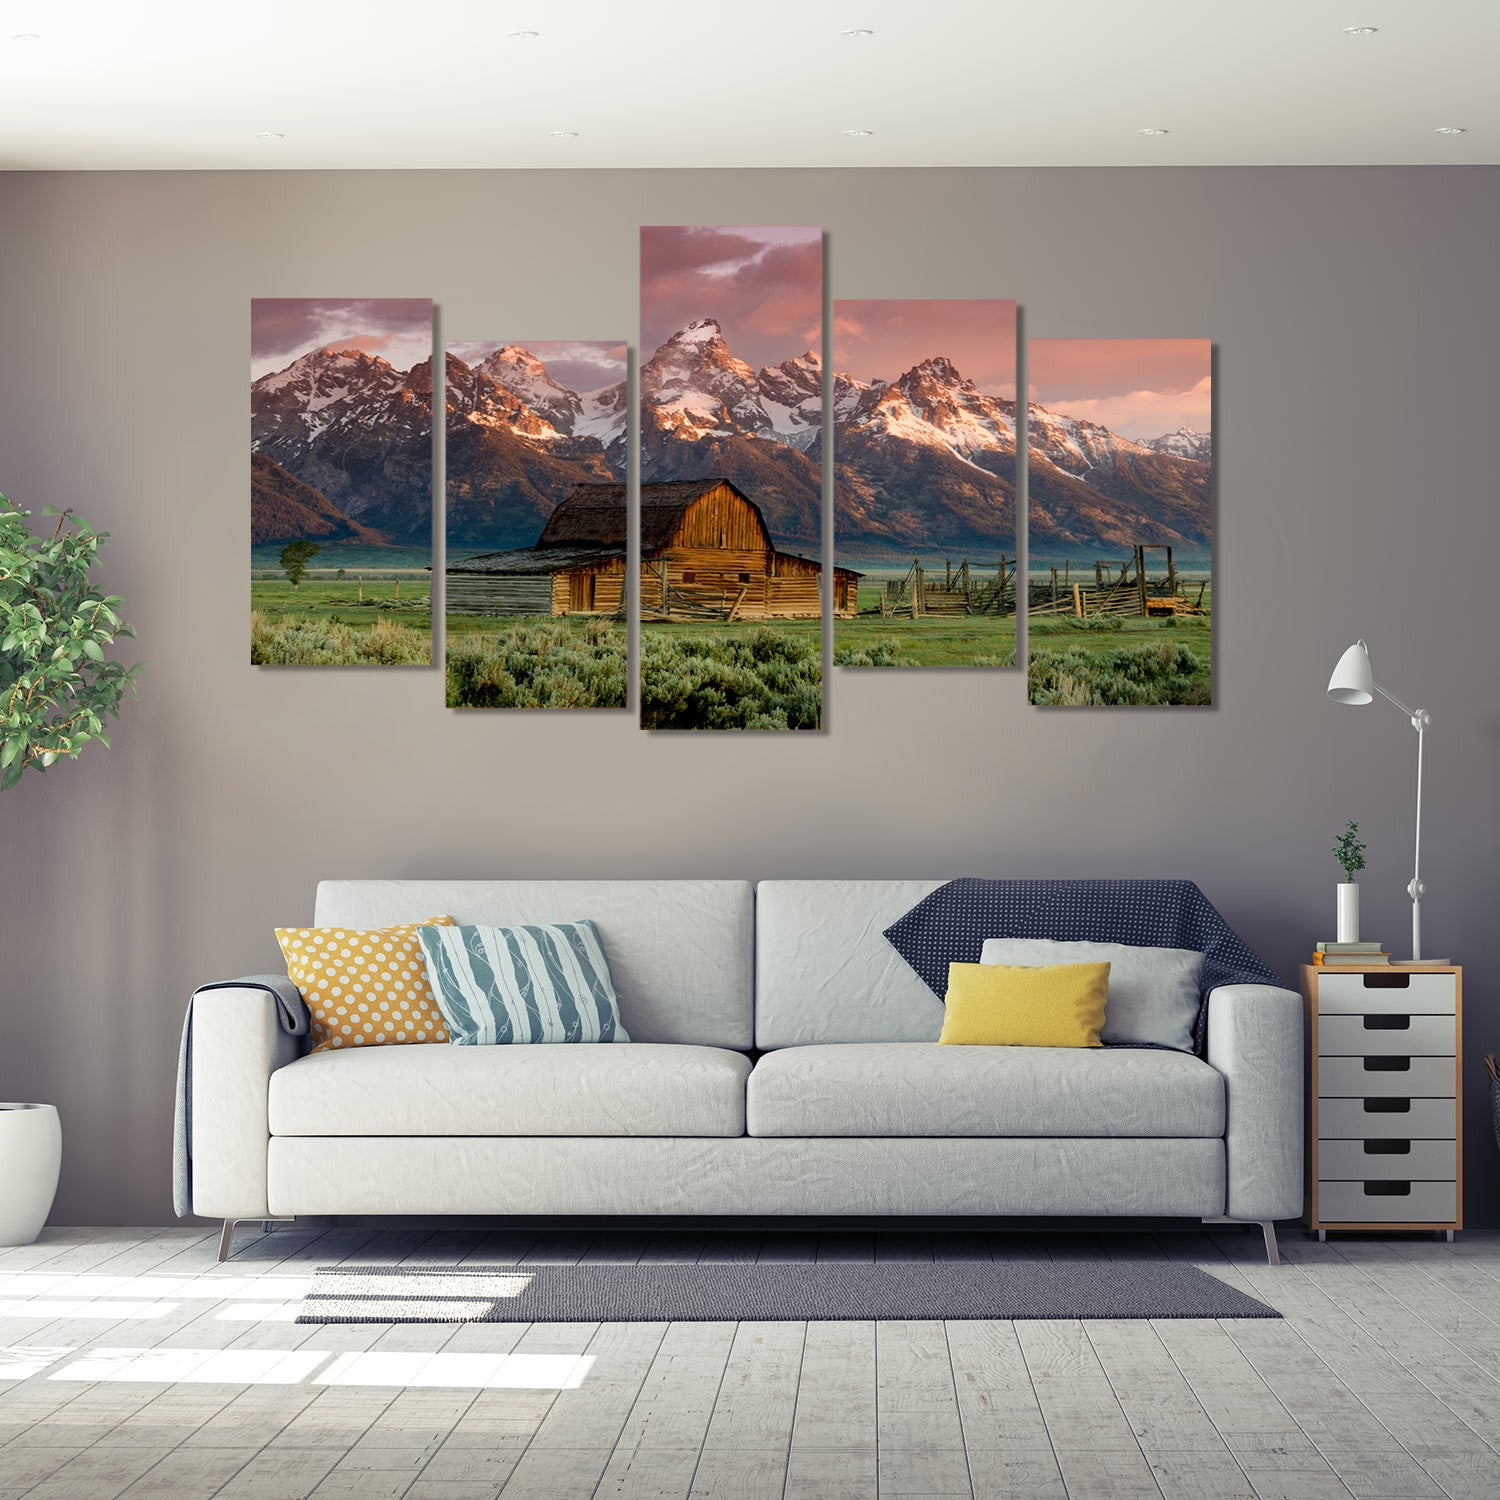 Barn House 5 Piece Canvas